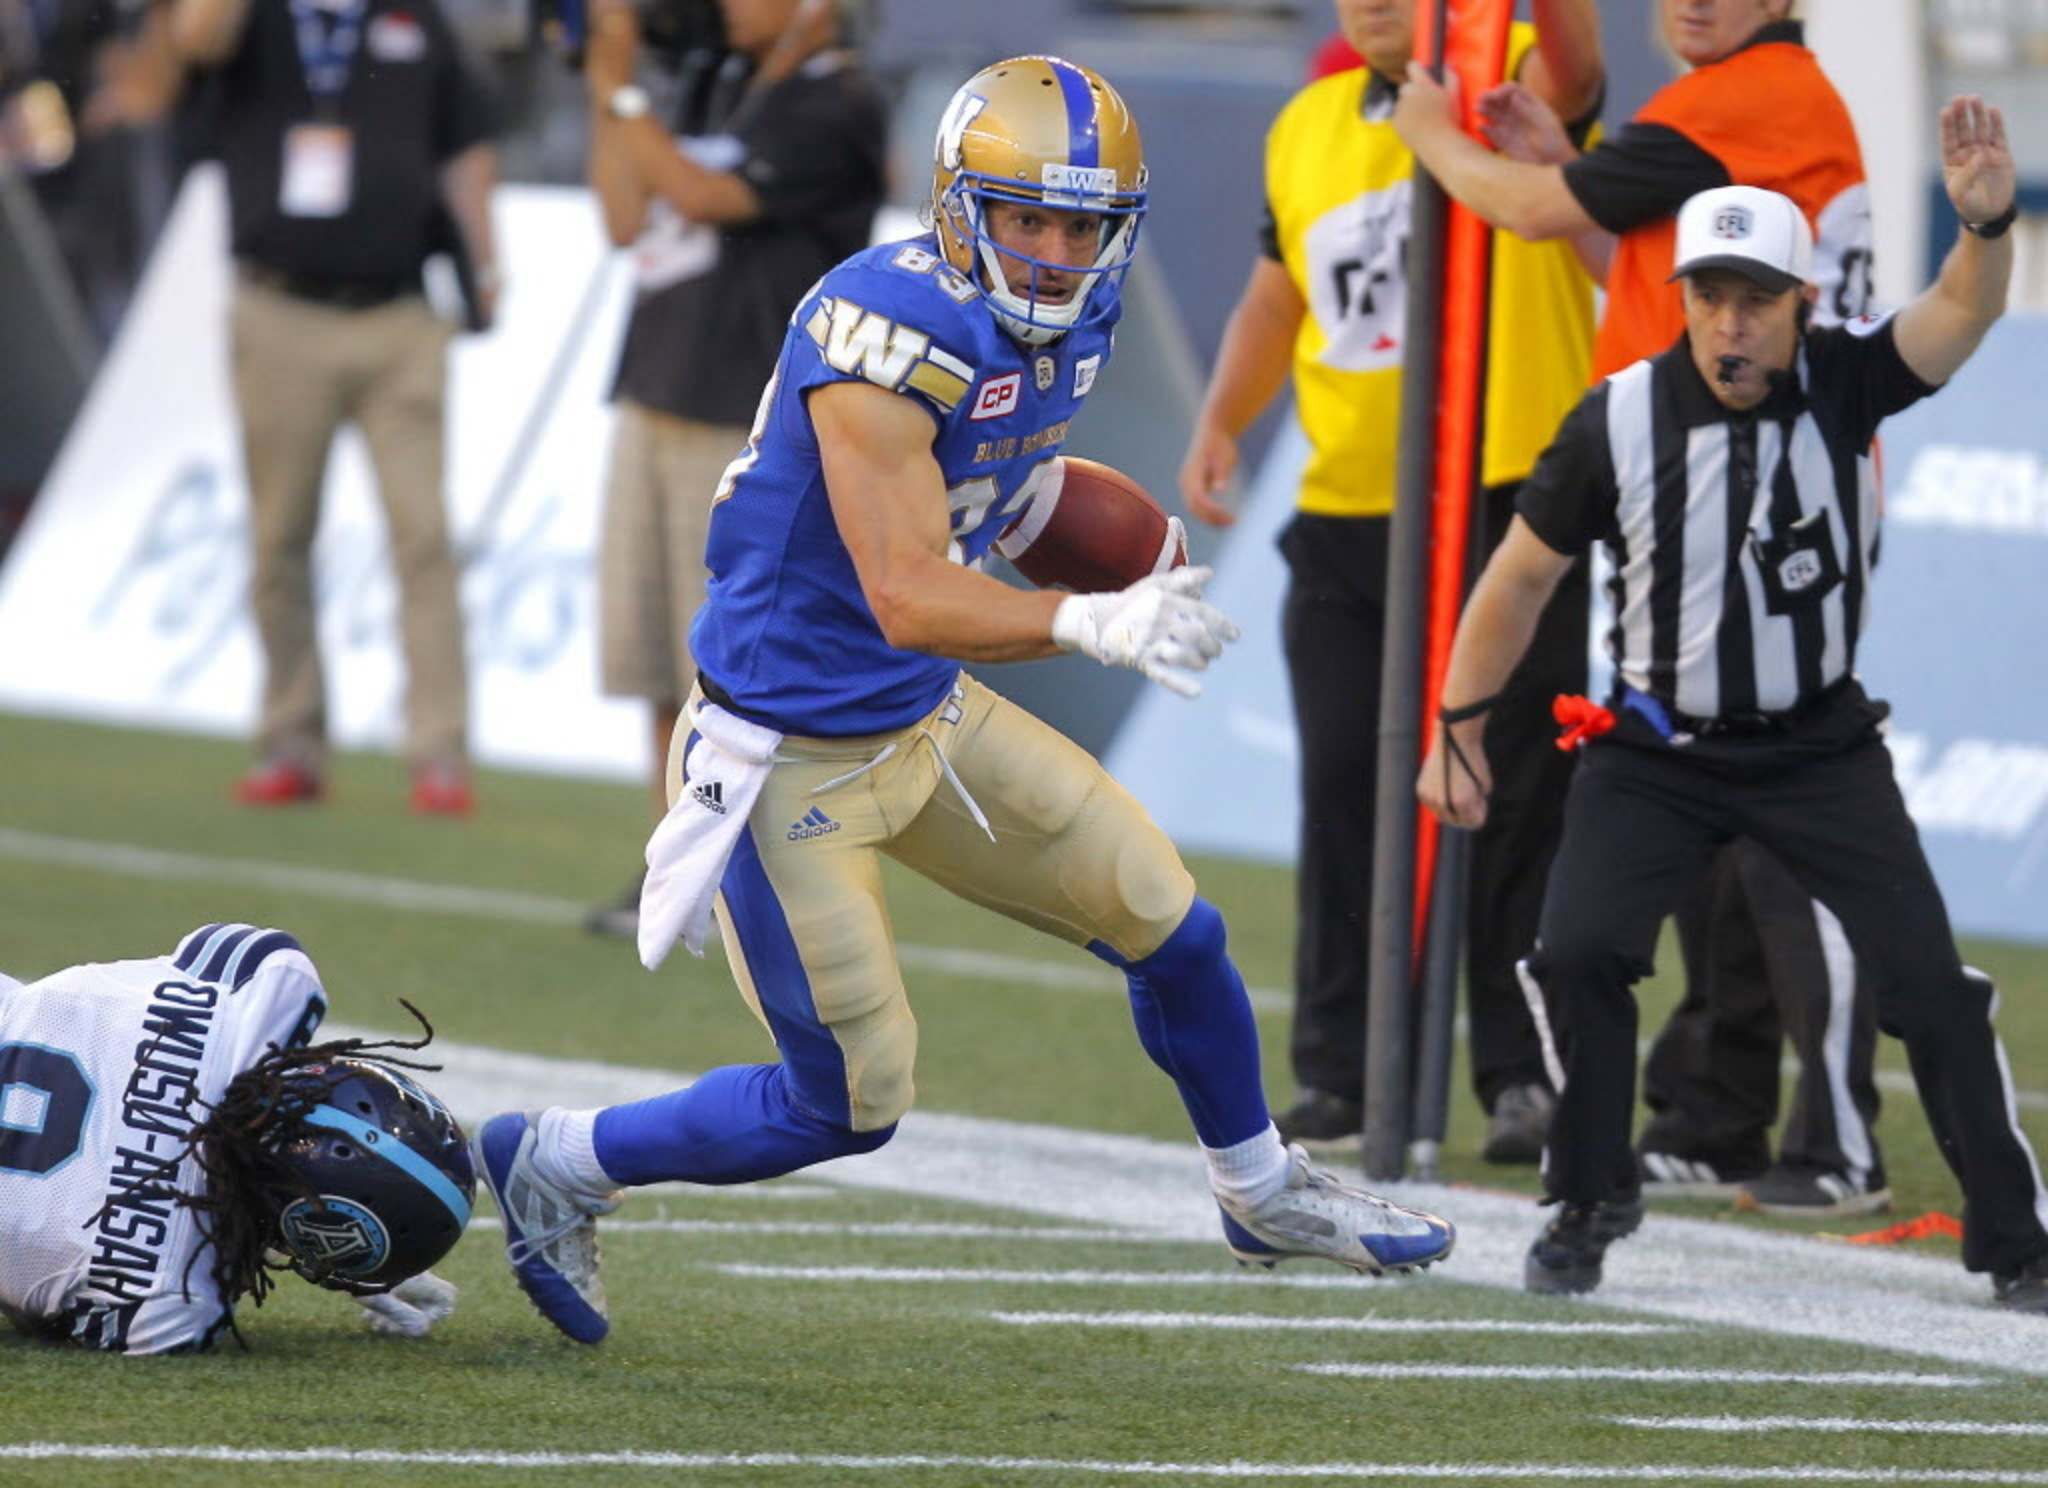 BORIS MINKEVICH / WINNIPEG FREE PRESS</p><p>Winnipeg Blue Bombers Julian Feoli-Gudino gets some yards after the catch in game against the Argos, Thursday.</p>